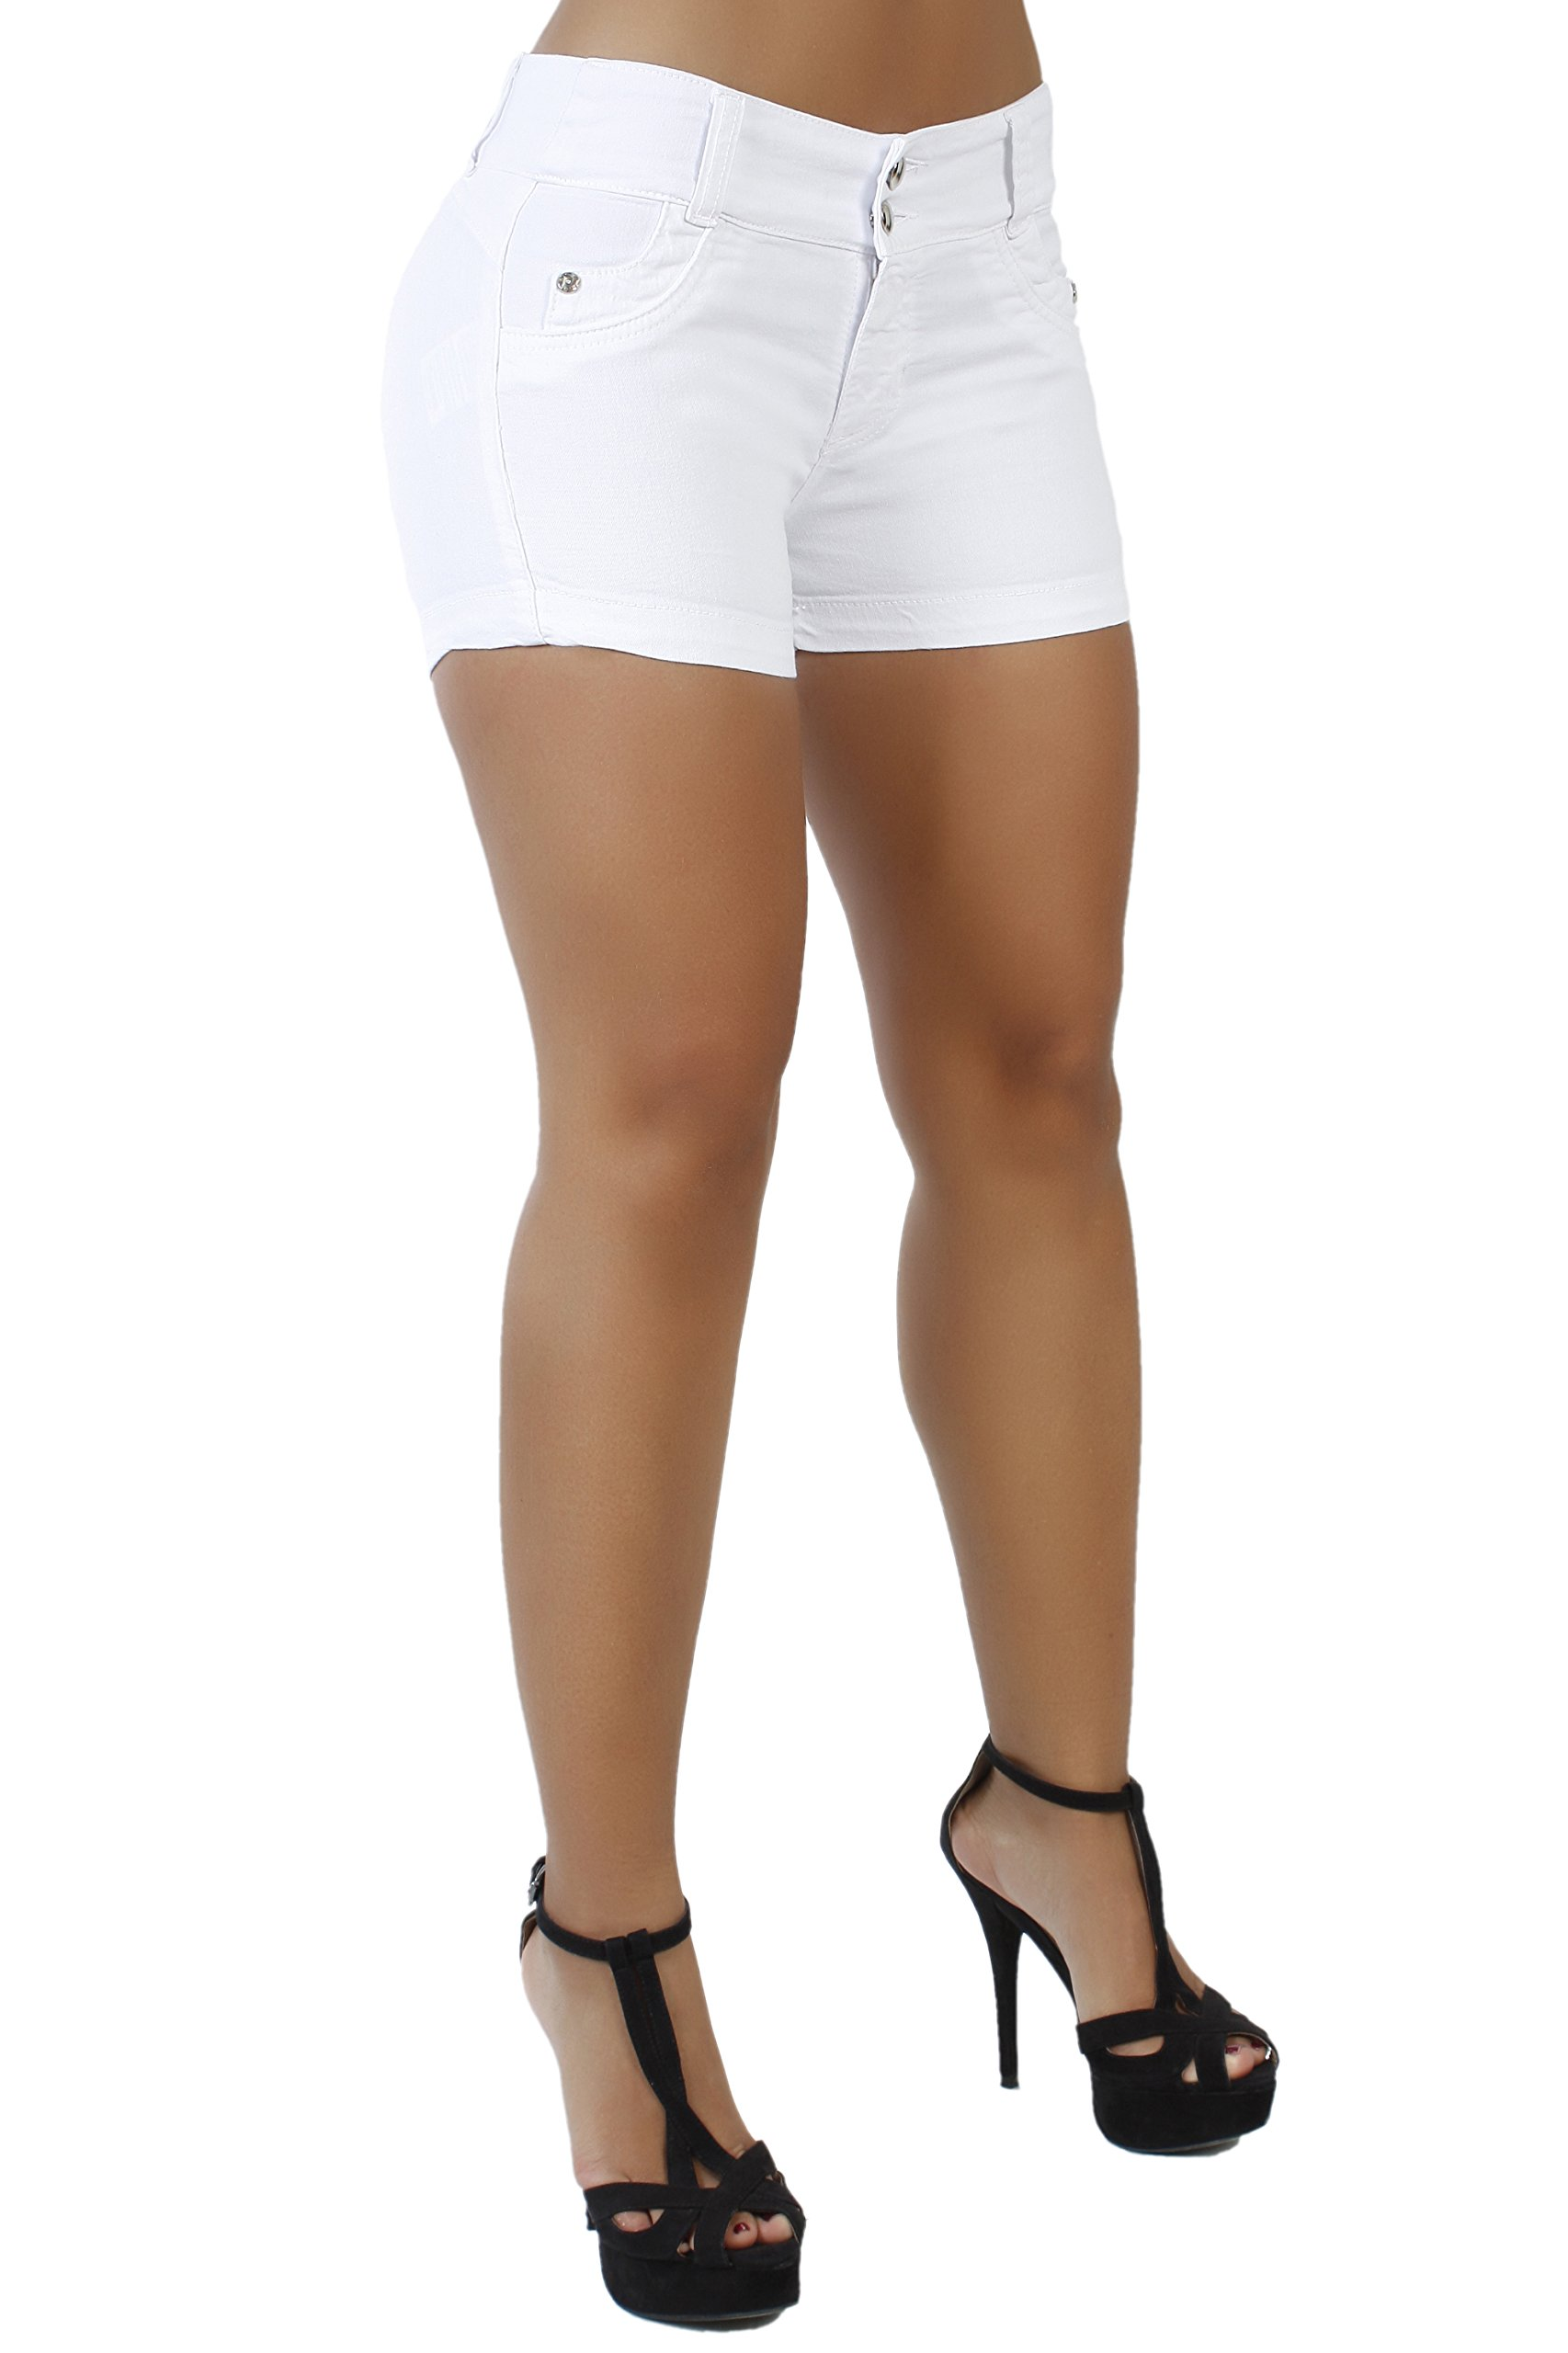 Curvify Butt Lift Stretch Sexy Jean Shorts For Women | Mid Rise Denim Shorts Levantacola 764 (Shorts White 5)